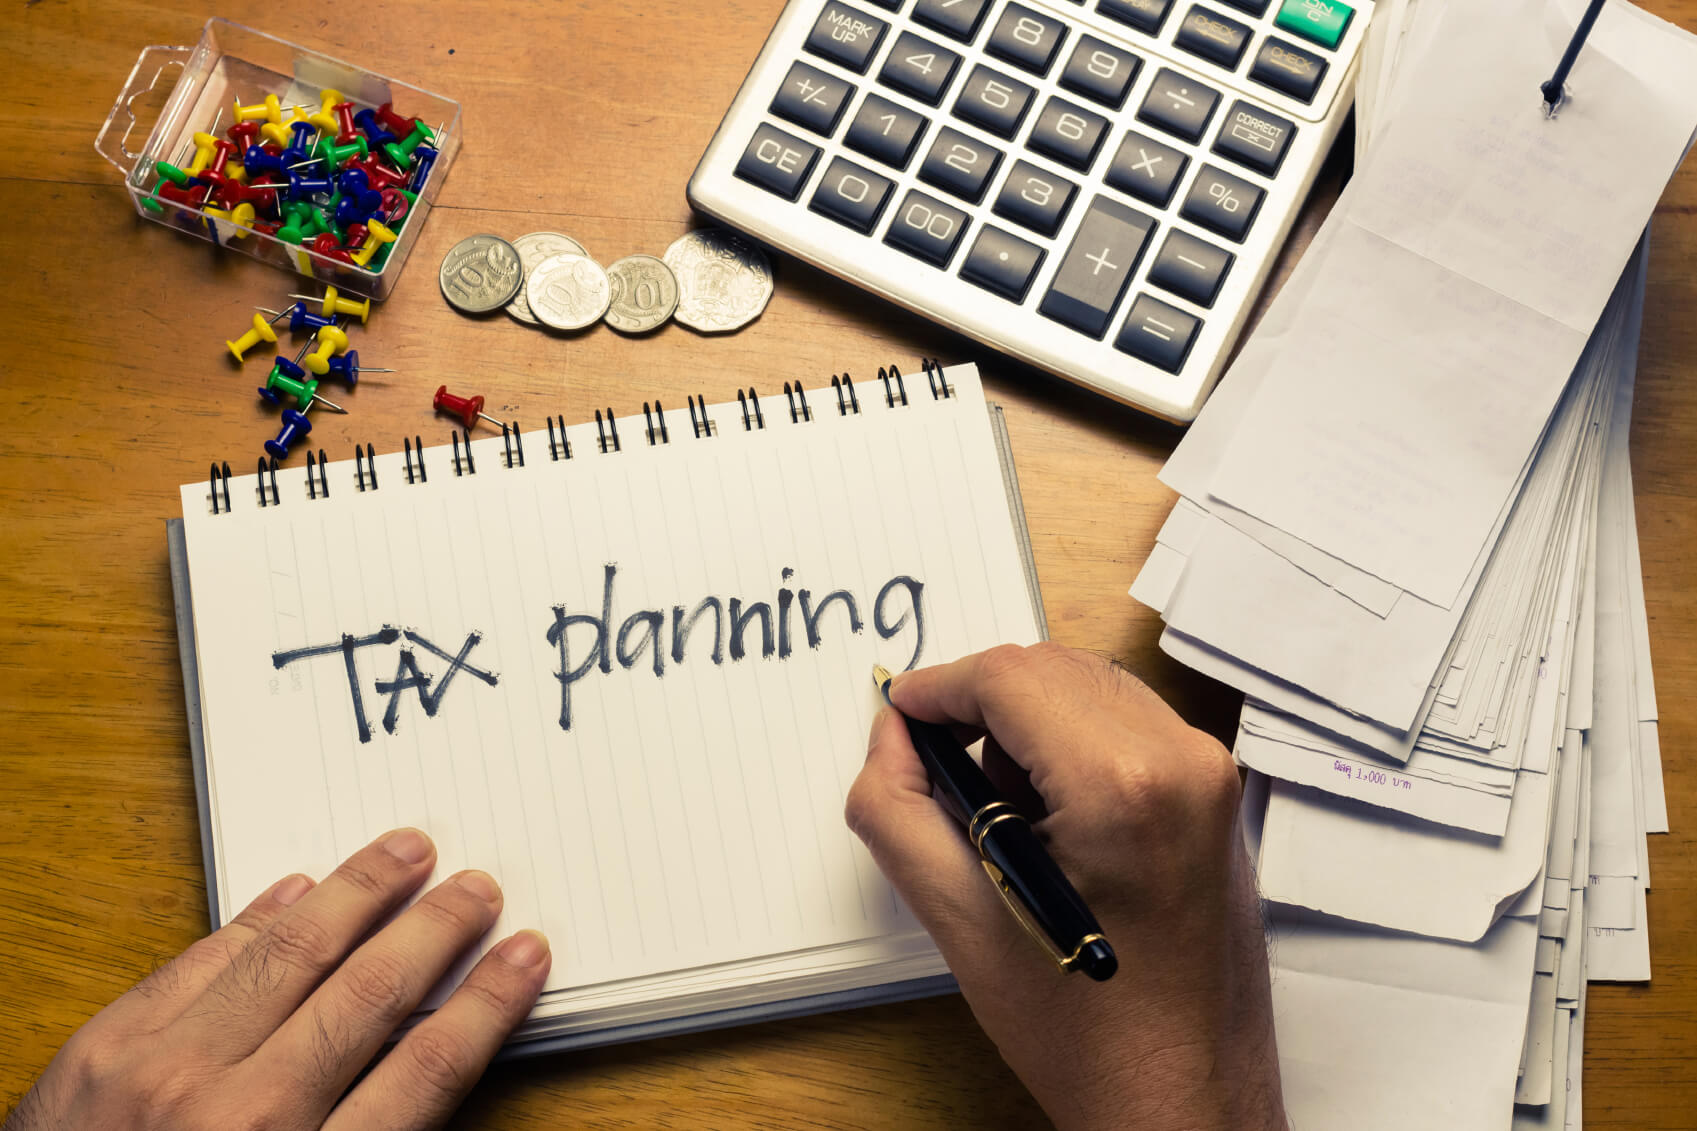 Ten Last Minute Tips to Make Tax Season Stress Free